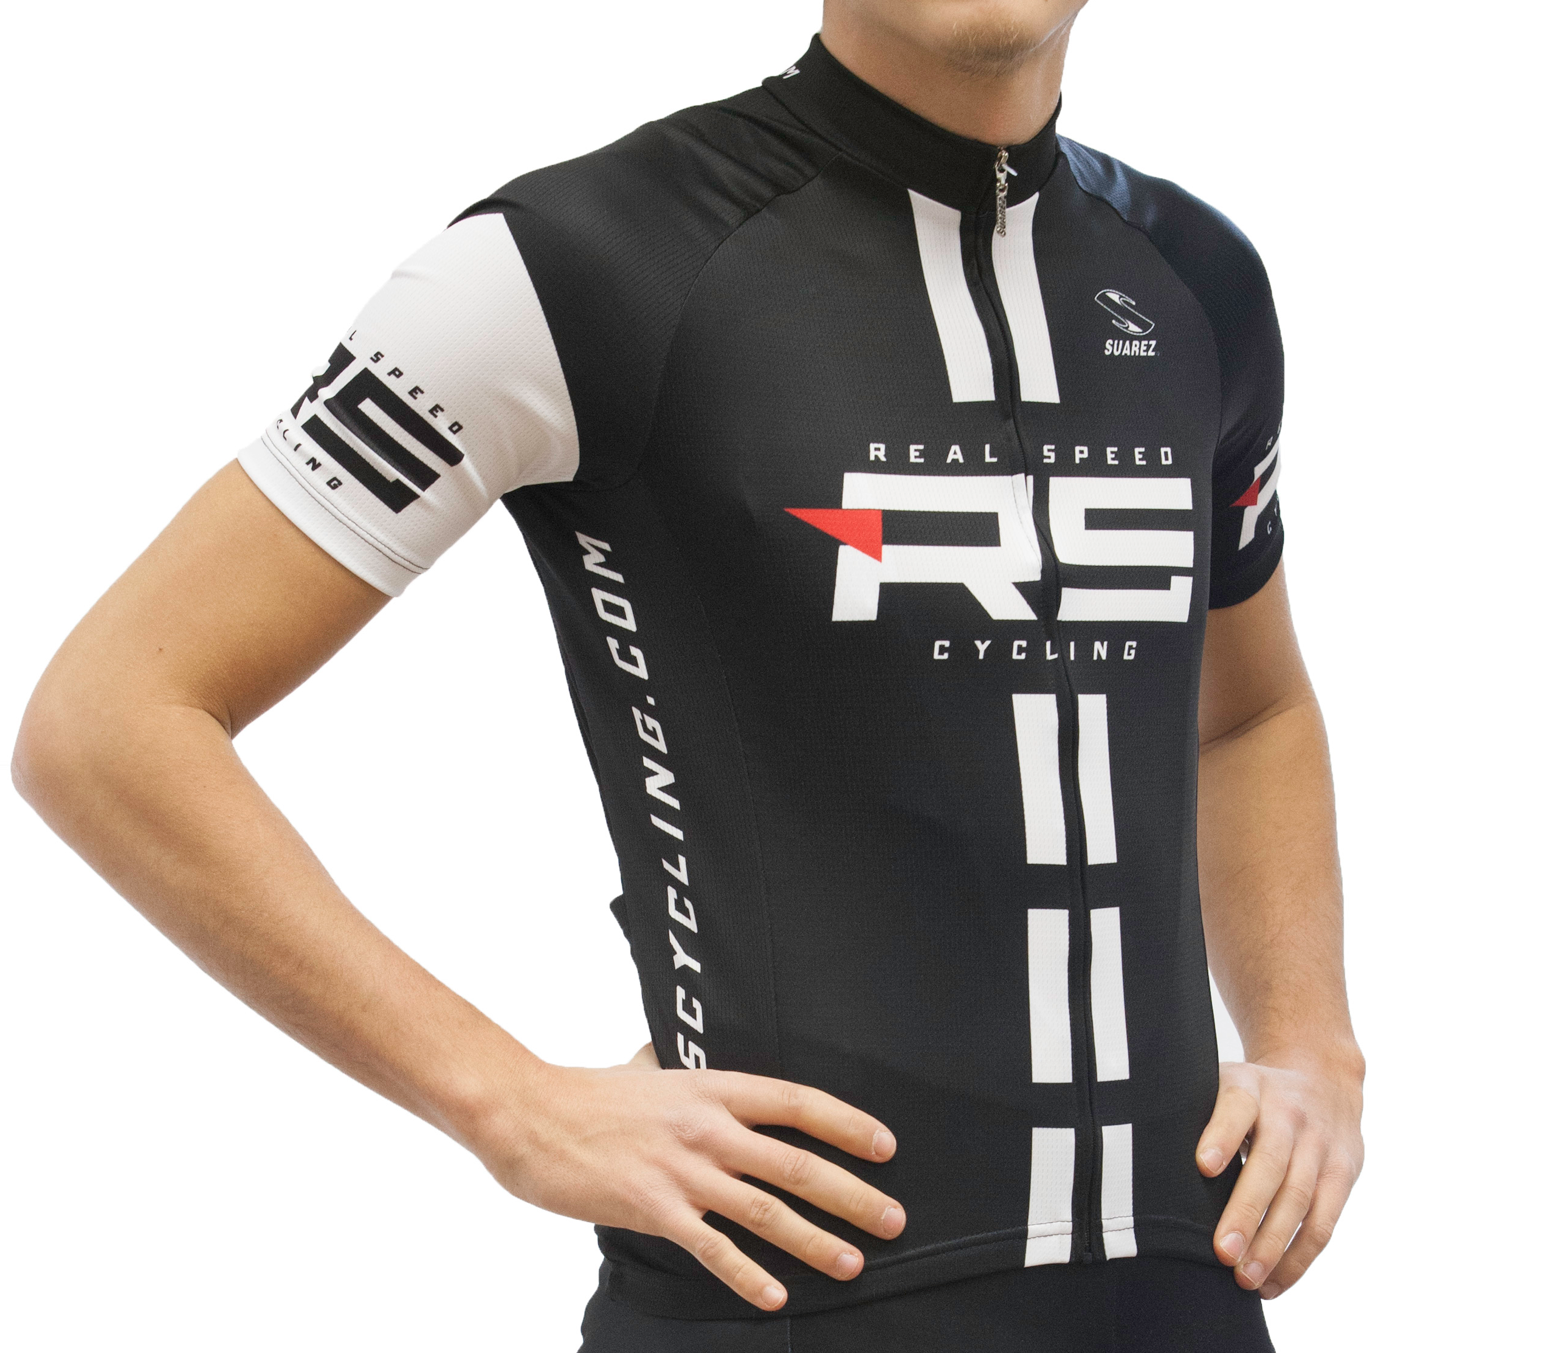 Real Speed Cycling Jersey - Racer Sportif 82ba2f7ed